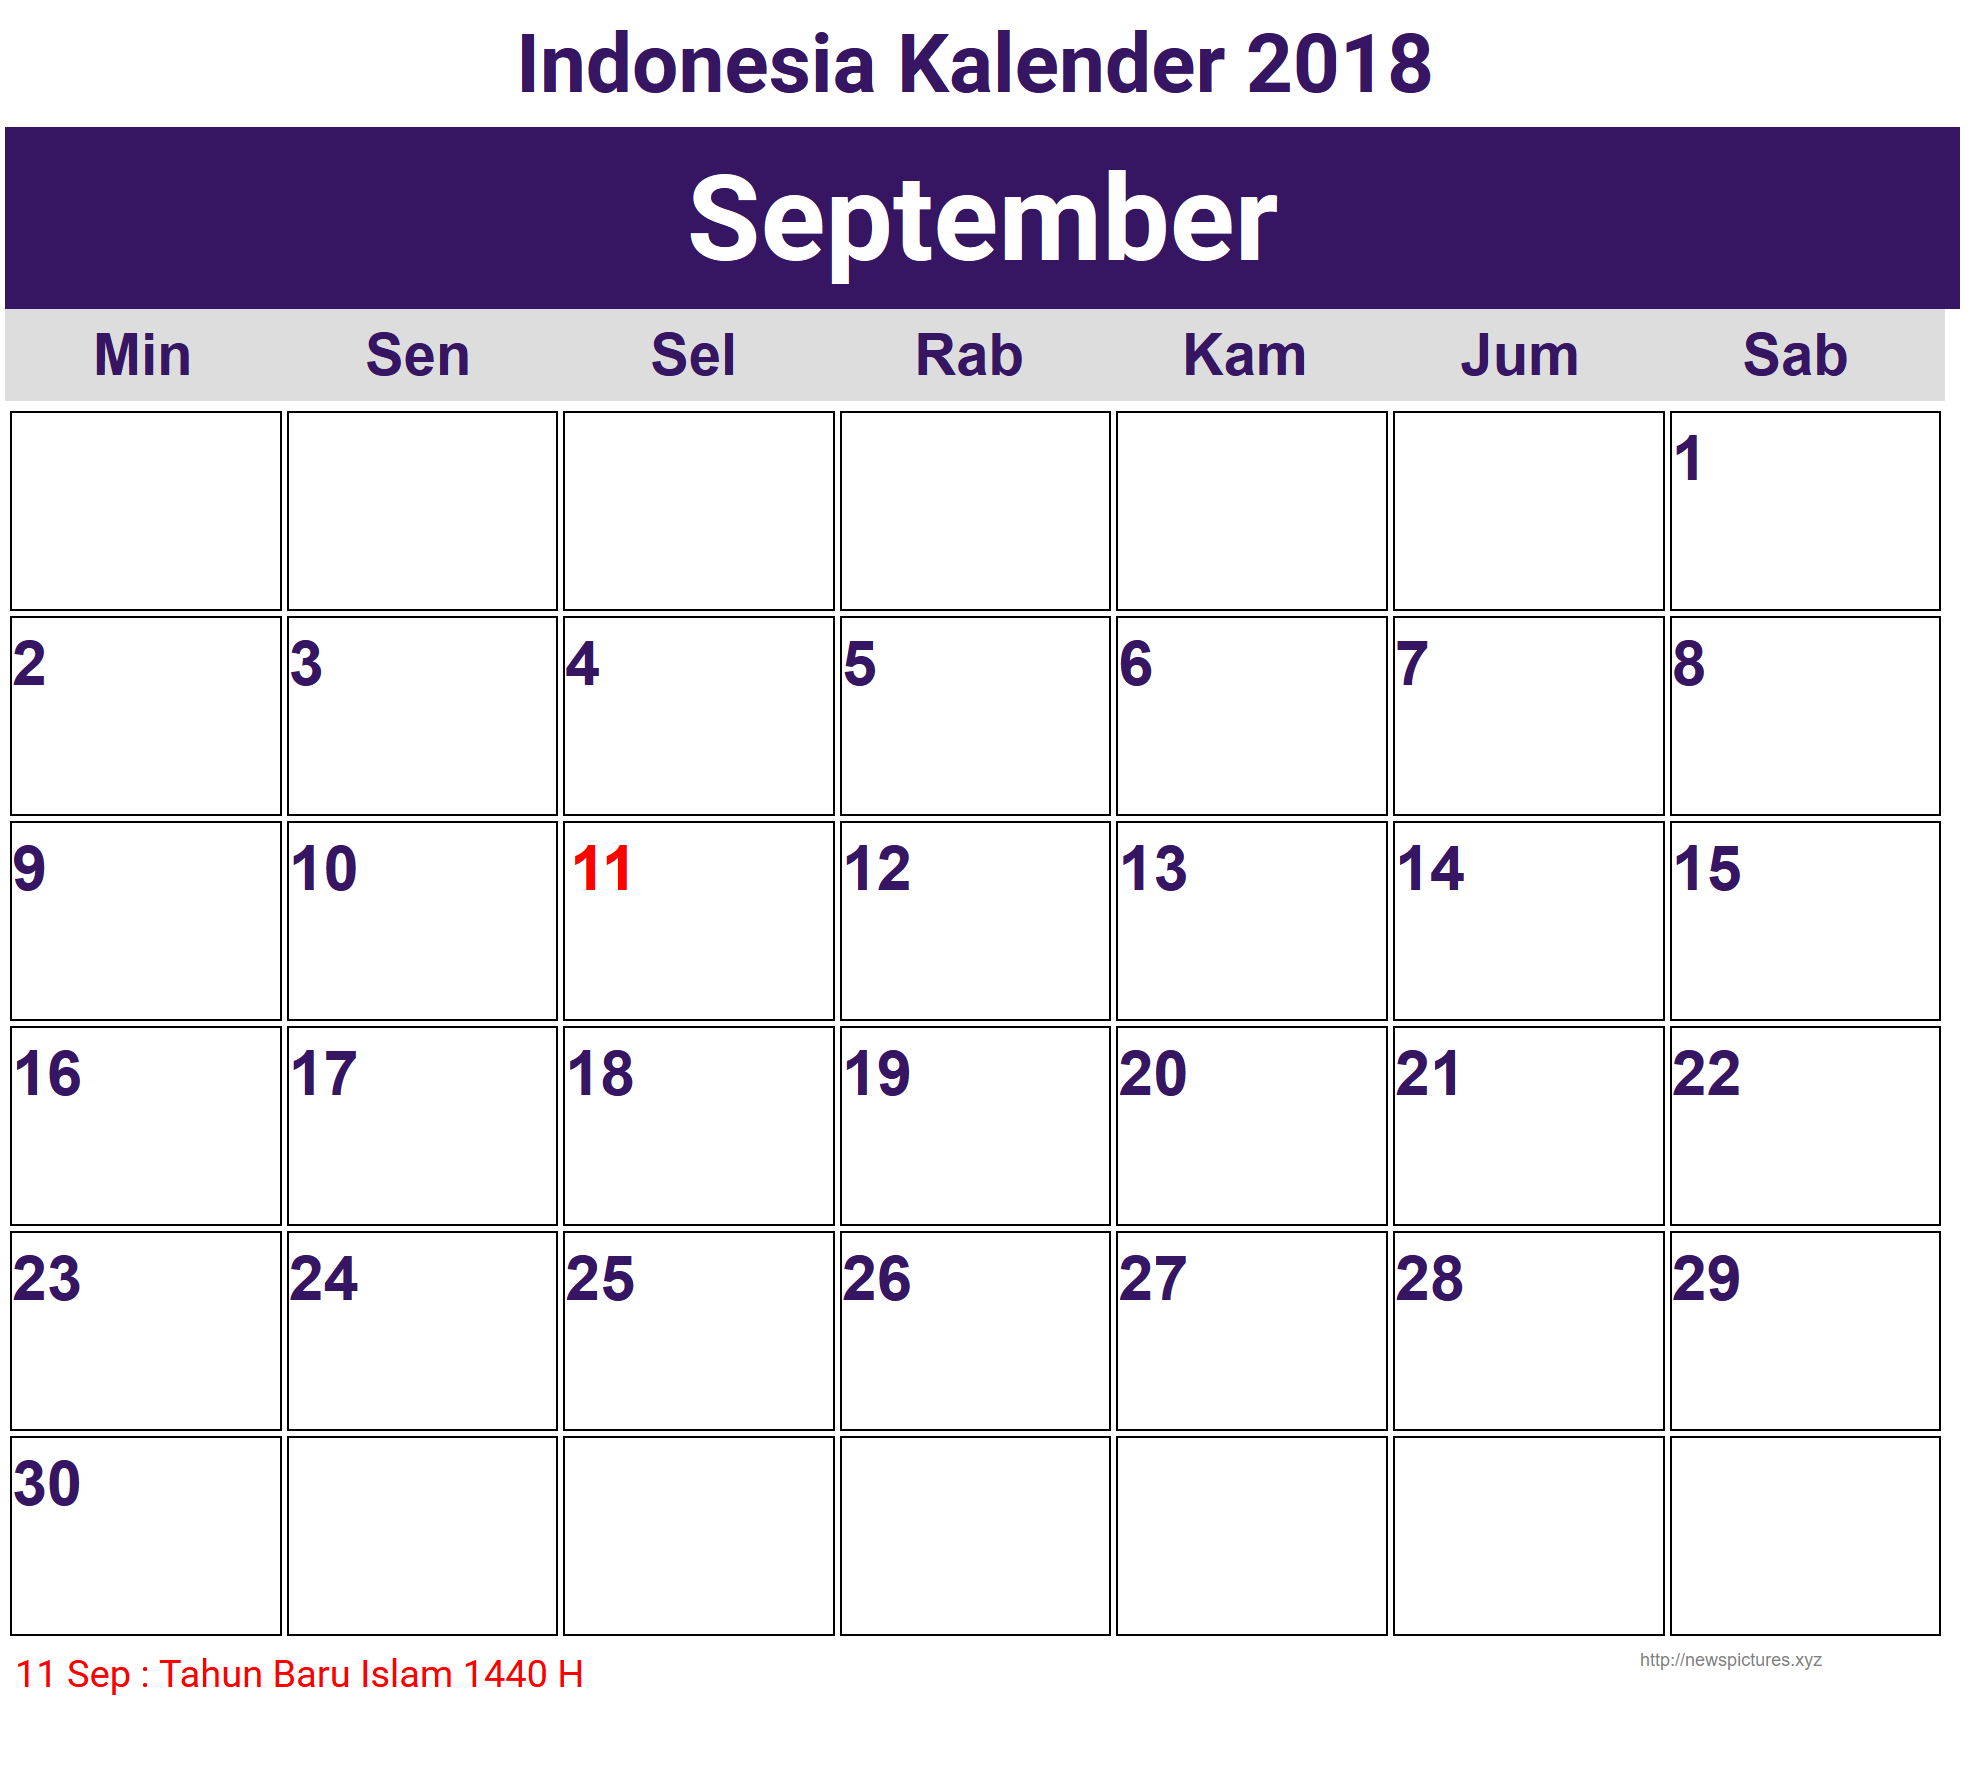 Art Wolfe Kalender September Indonesia Kalender 2018 Indonesia Kalender Calendar